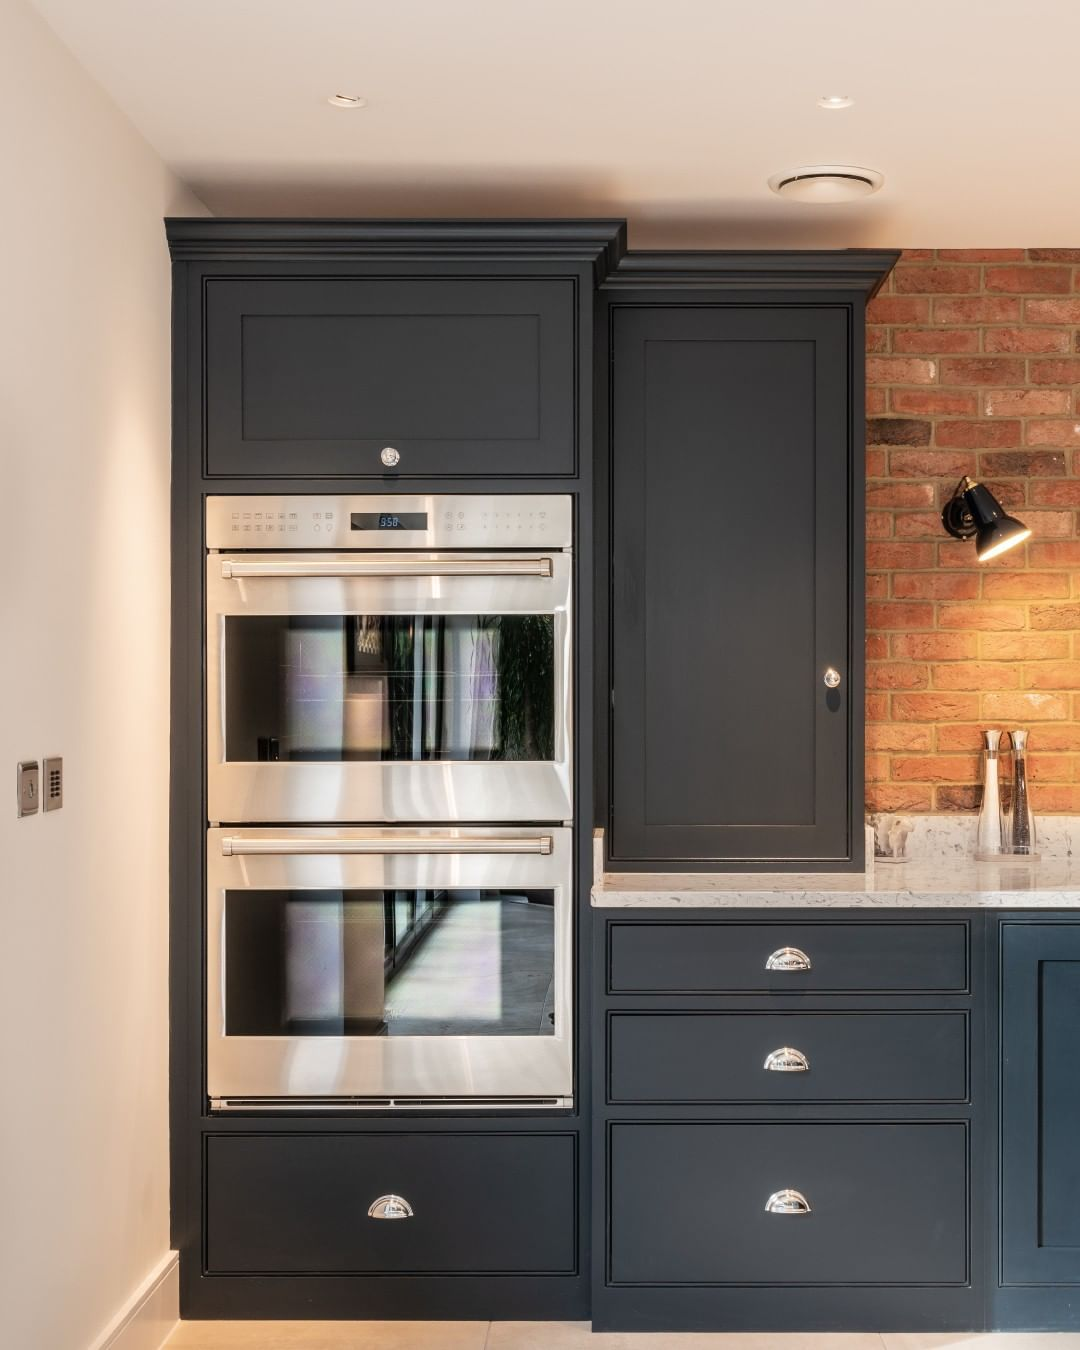 Handmade Kitchen Company On Instagram Our Hutton Project In Brentwood Features A Selection Of Wolf A Double Oven Kitchen Exposed Brick Kitchen Built In Ovens